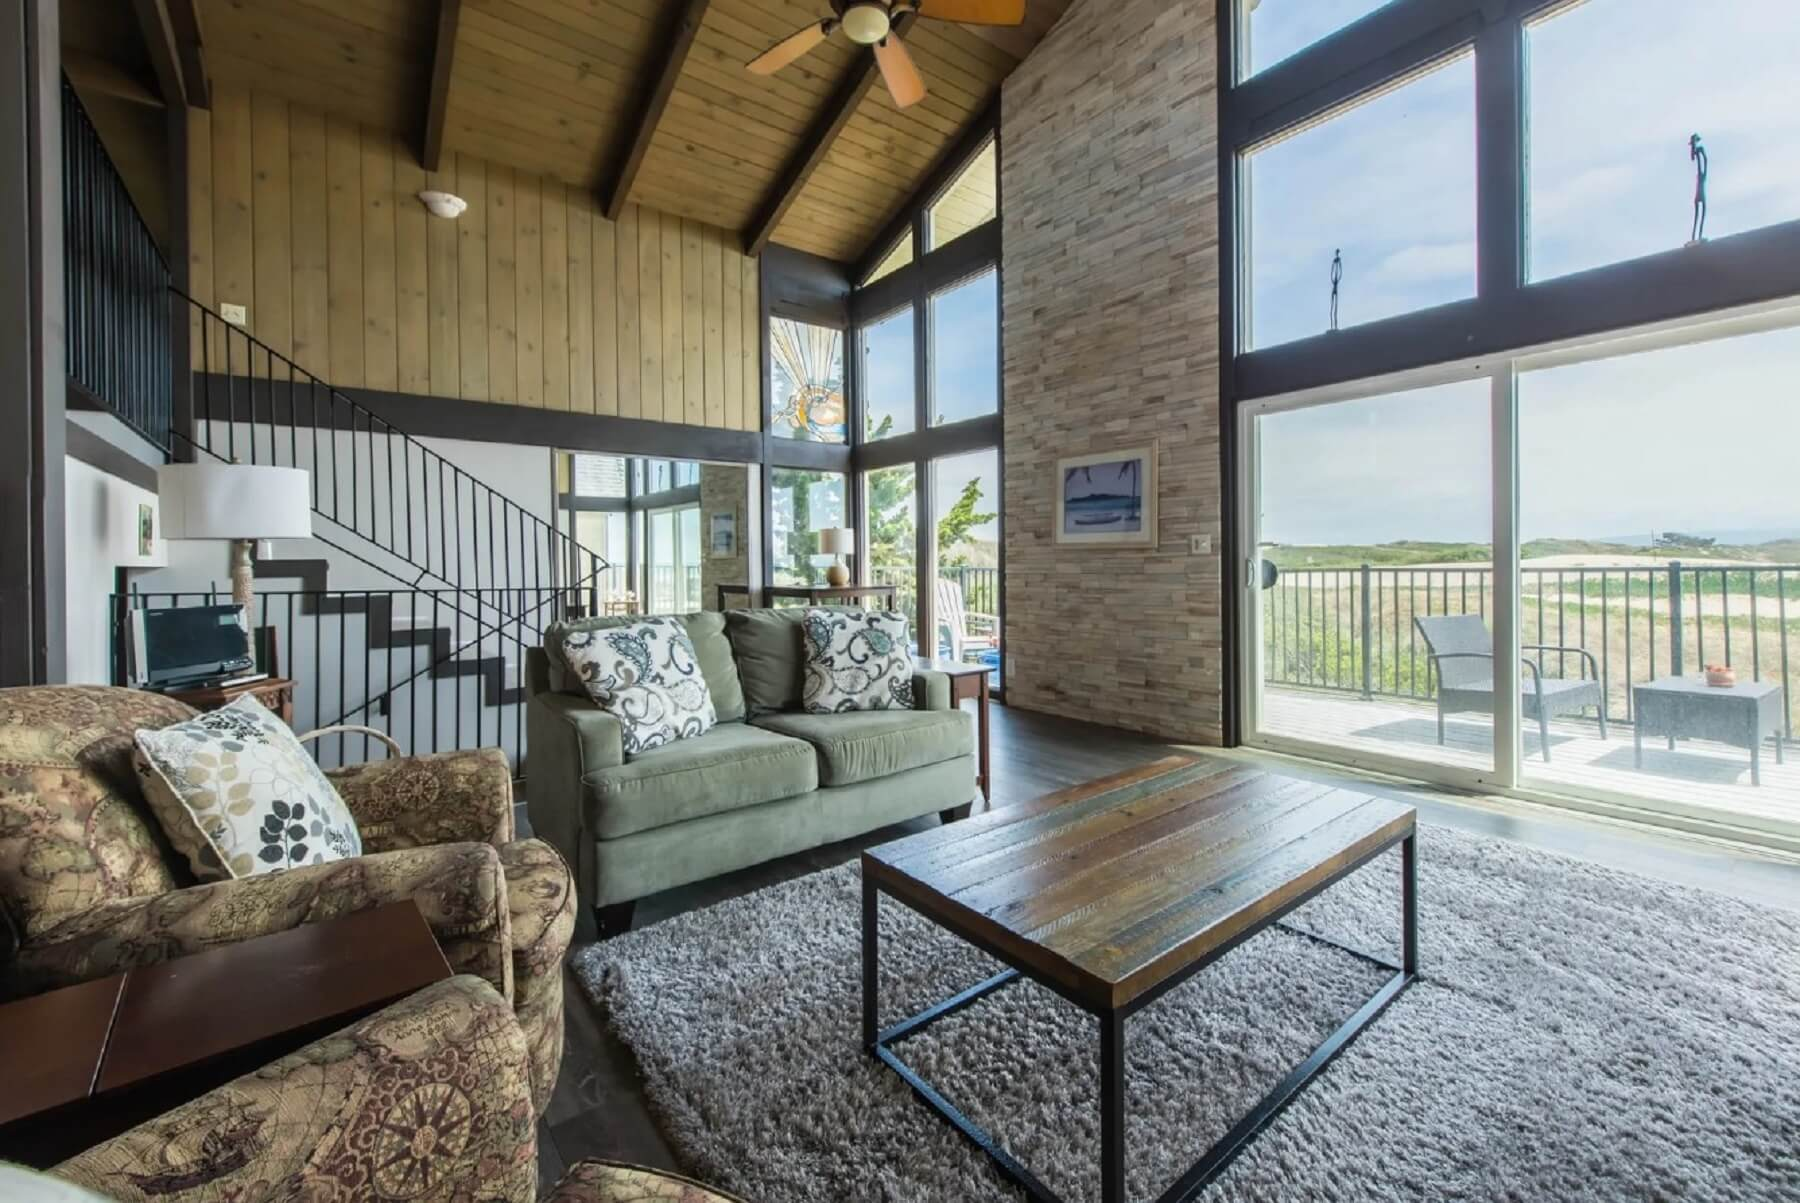 Oceanview Hideaway - Interior - Living Area with two story windows that show the view and porch